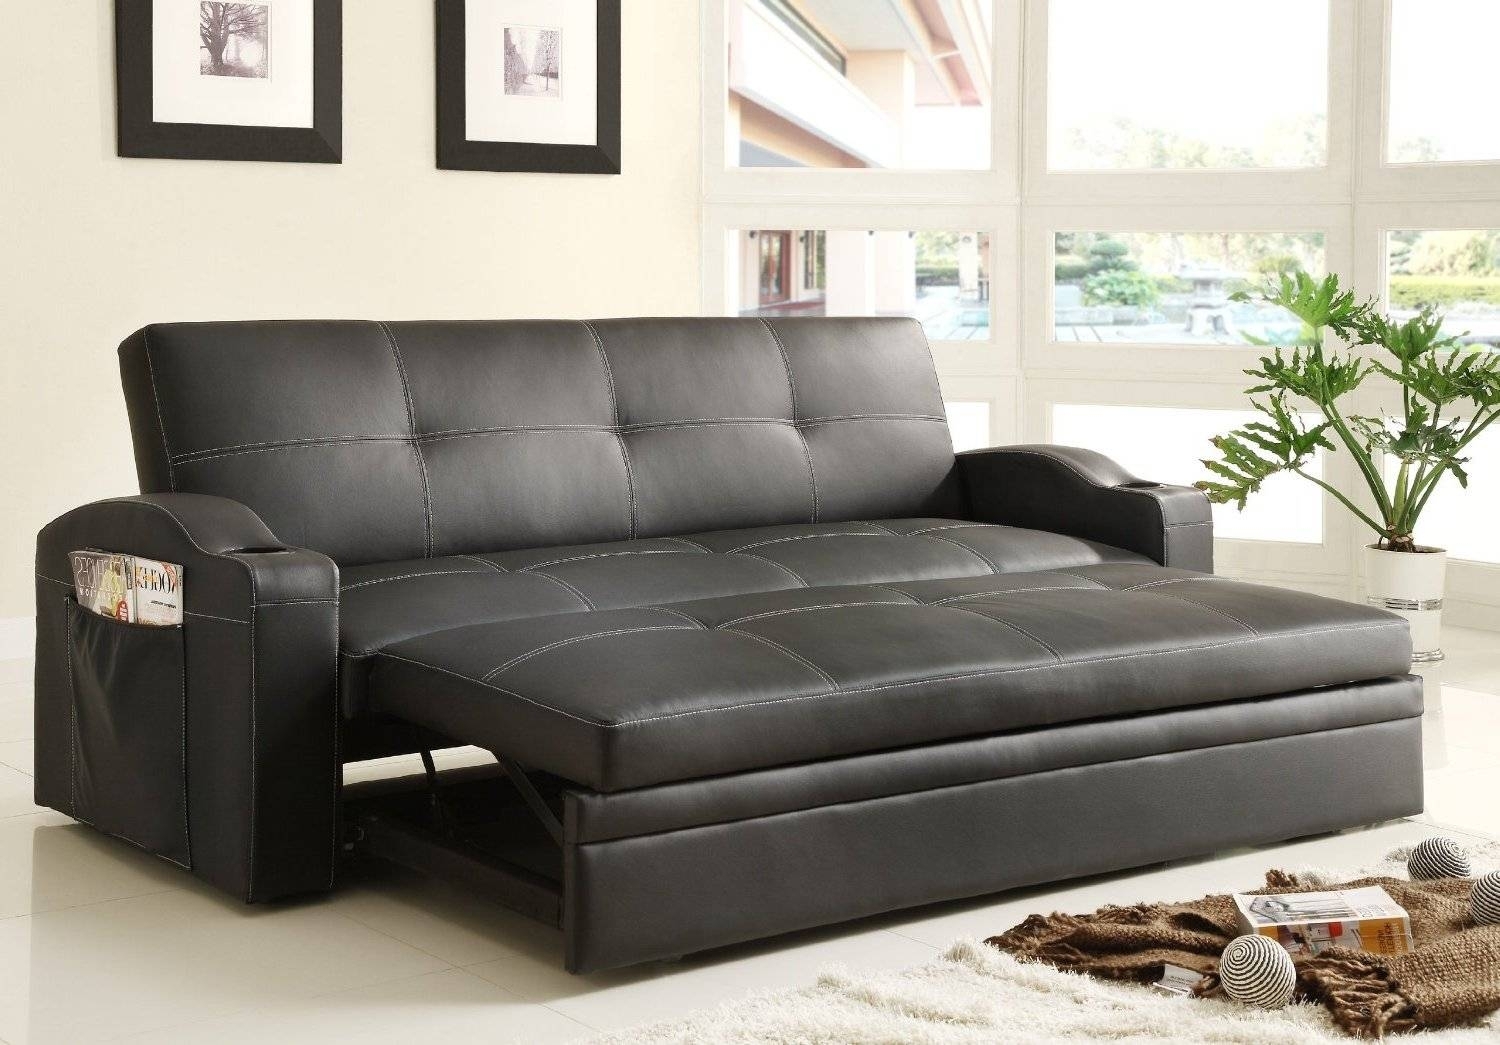 Adjustable Queen Size Sofa Bed Black Color Upholstered In Black Bi regarding Queen Size Convertible Sofa Beds (Image 3 of 15)